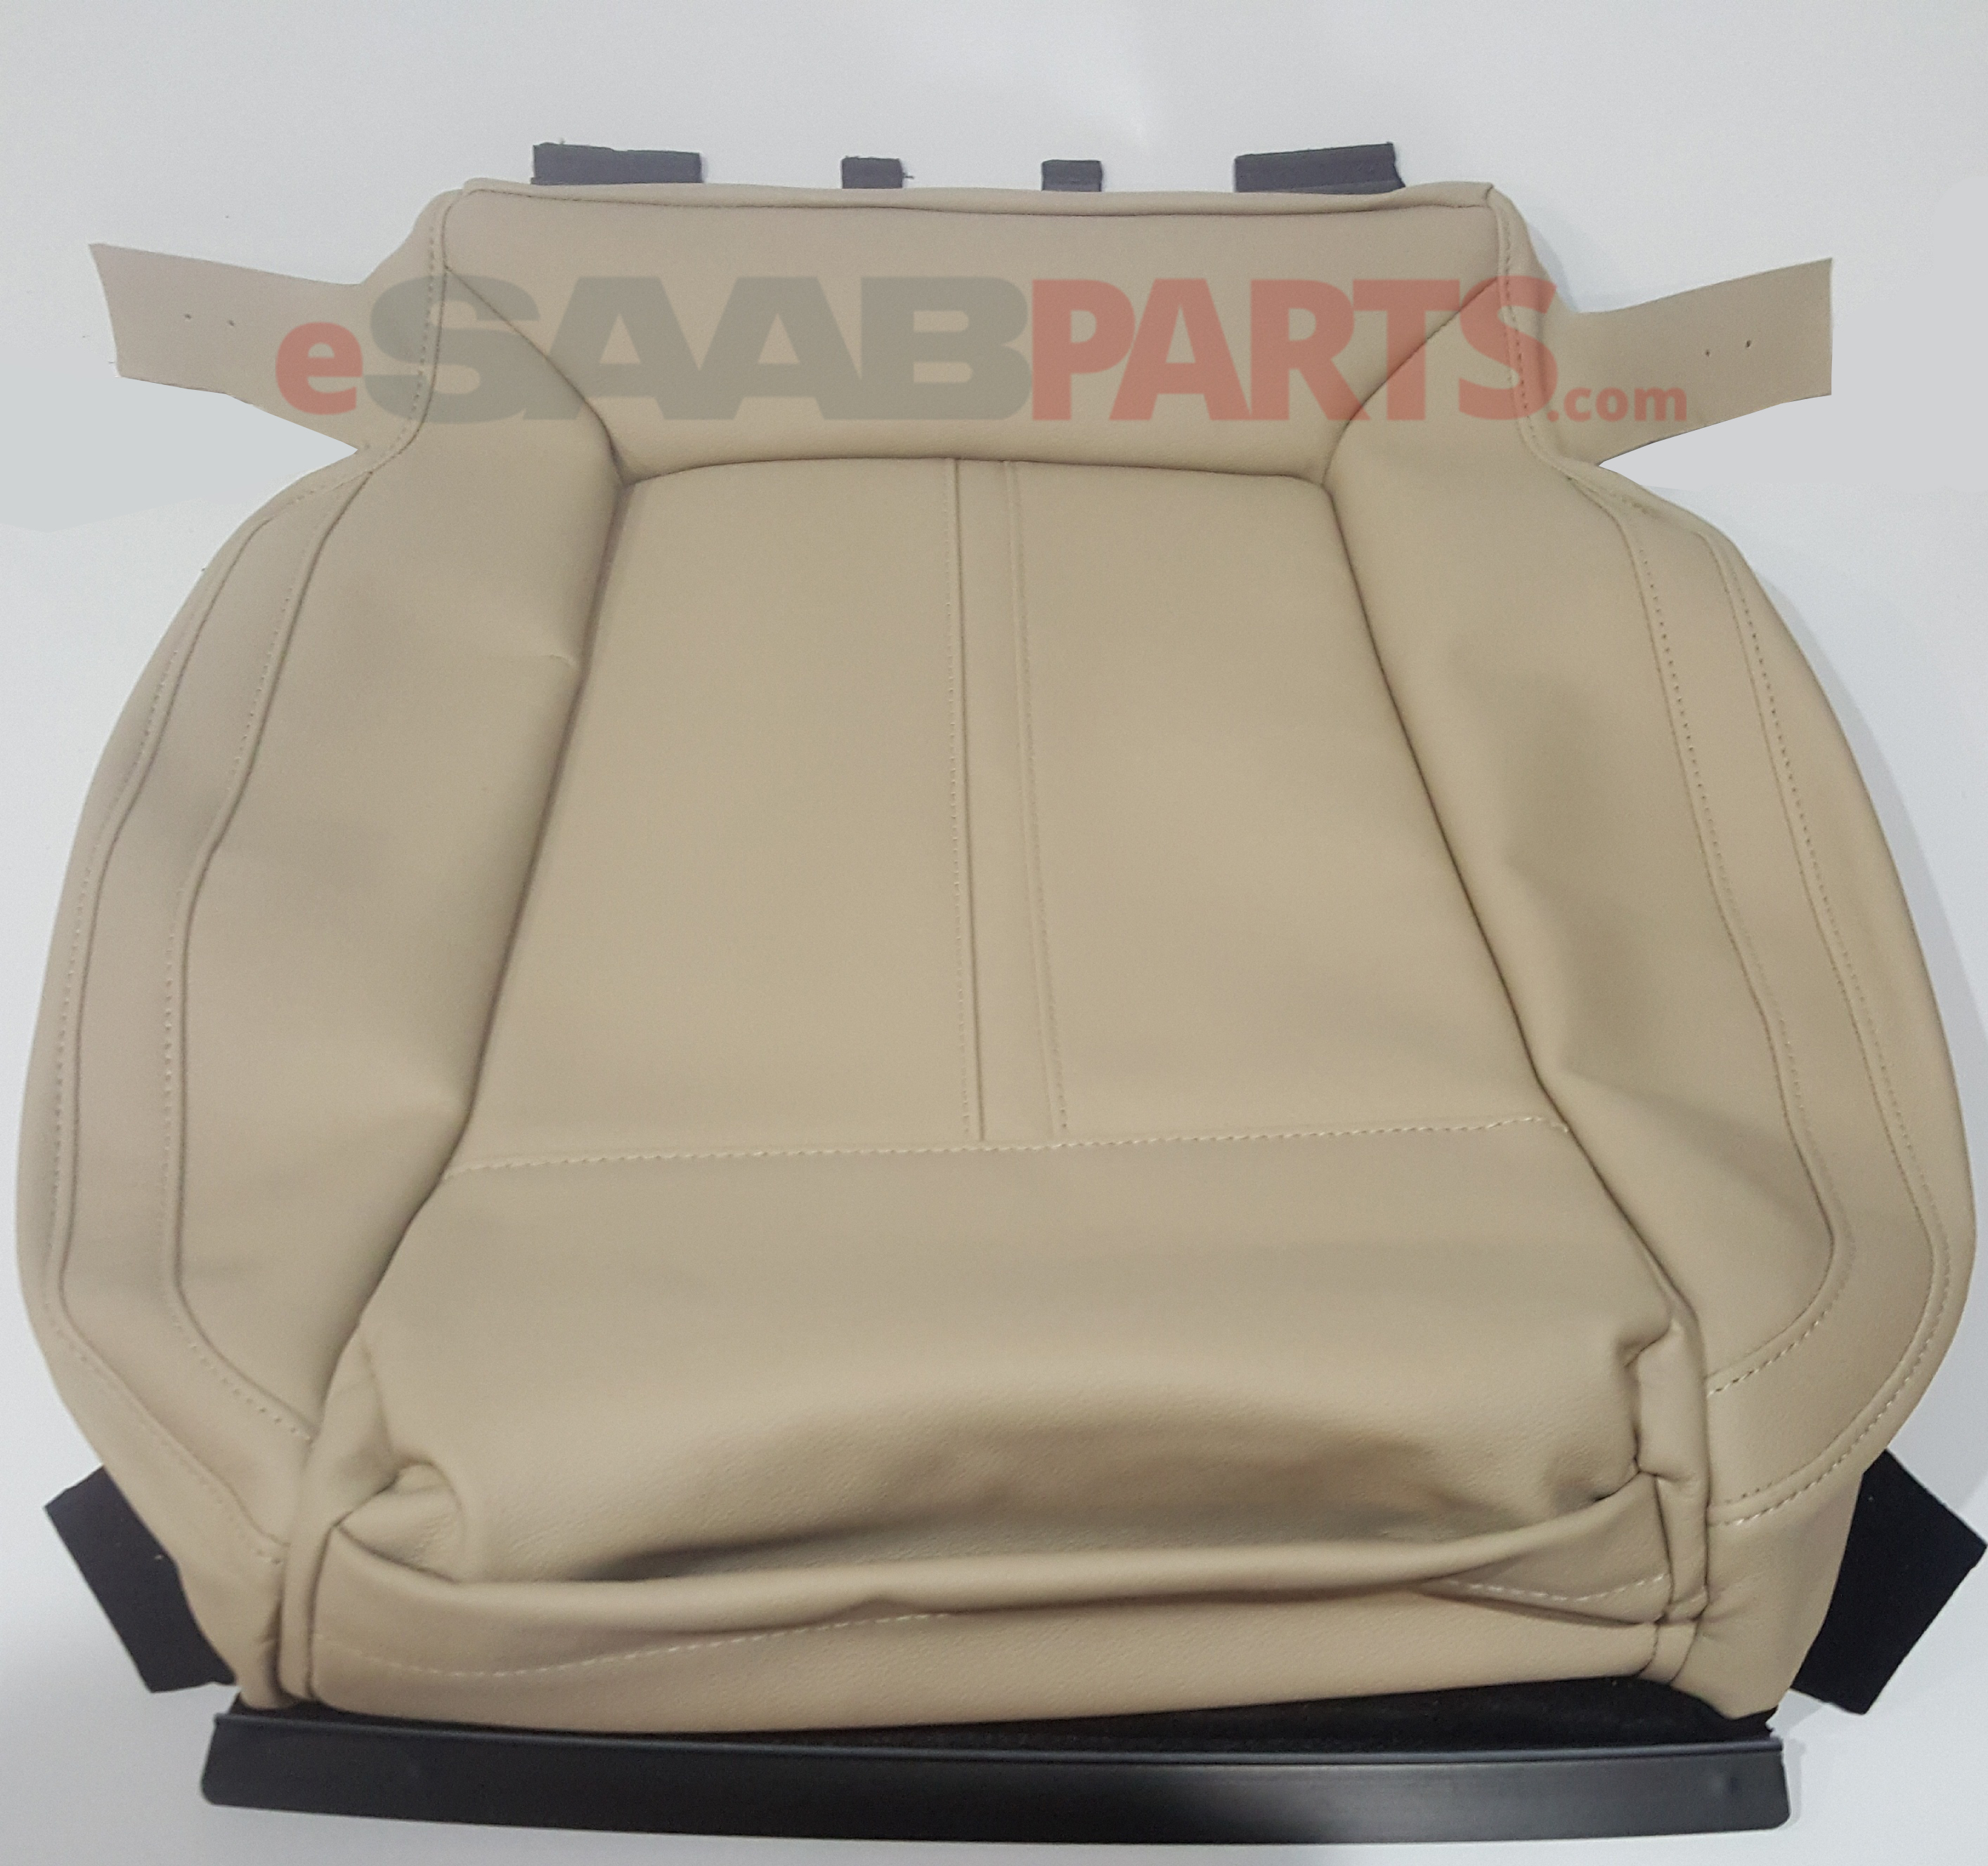 Seat Cover LH Bottom - Light Neutral (Tan/Beige) C59/D59/L59 (Comfort Seats)